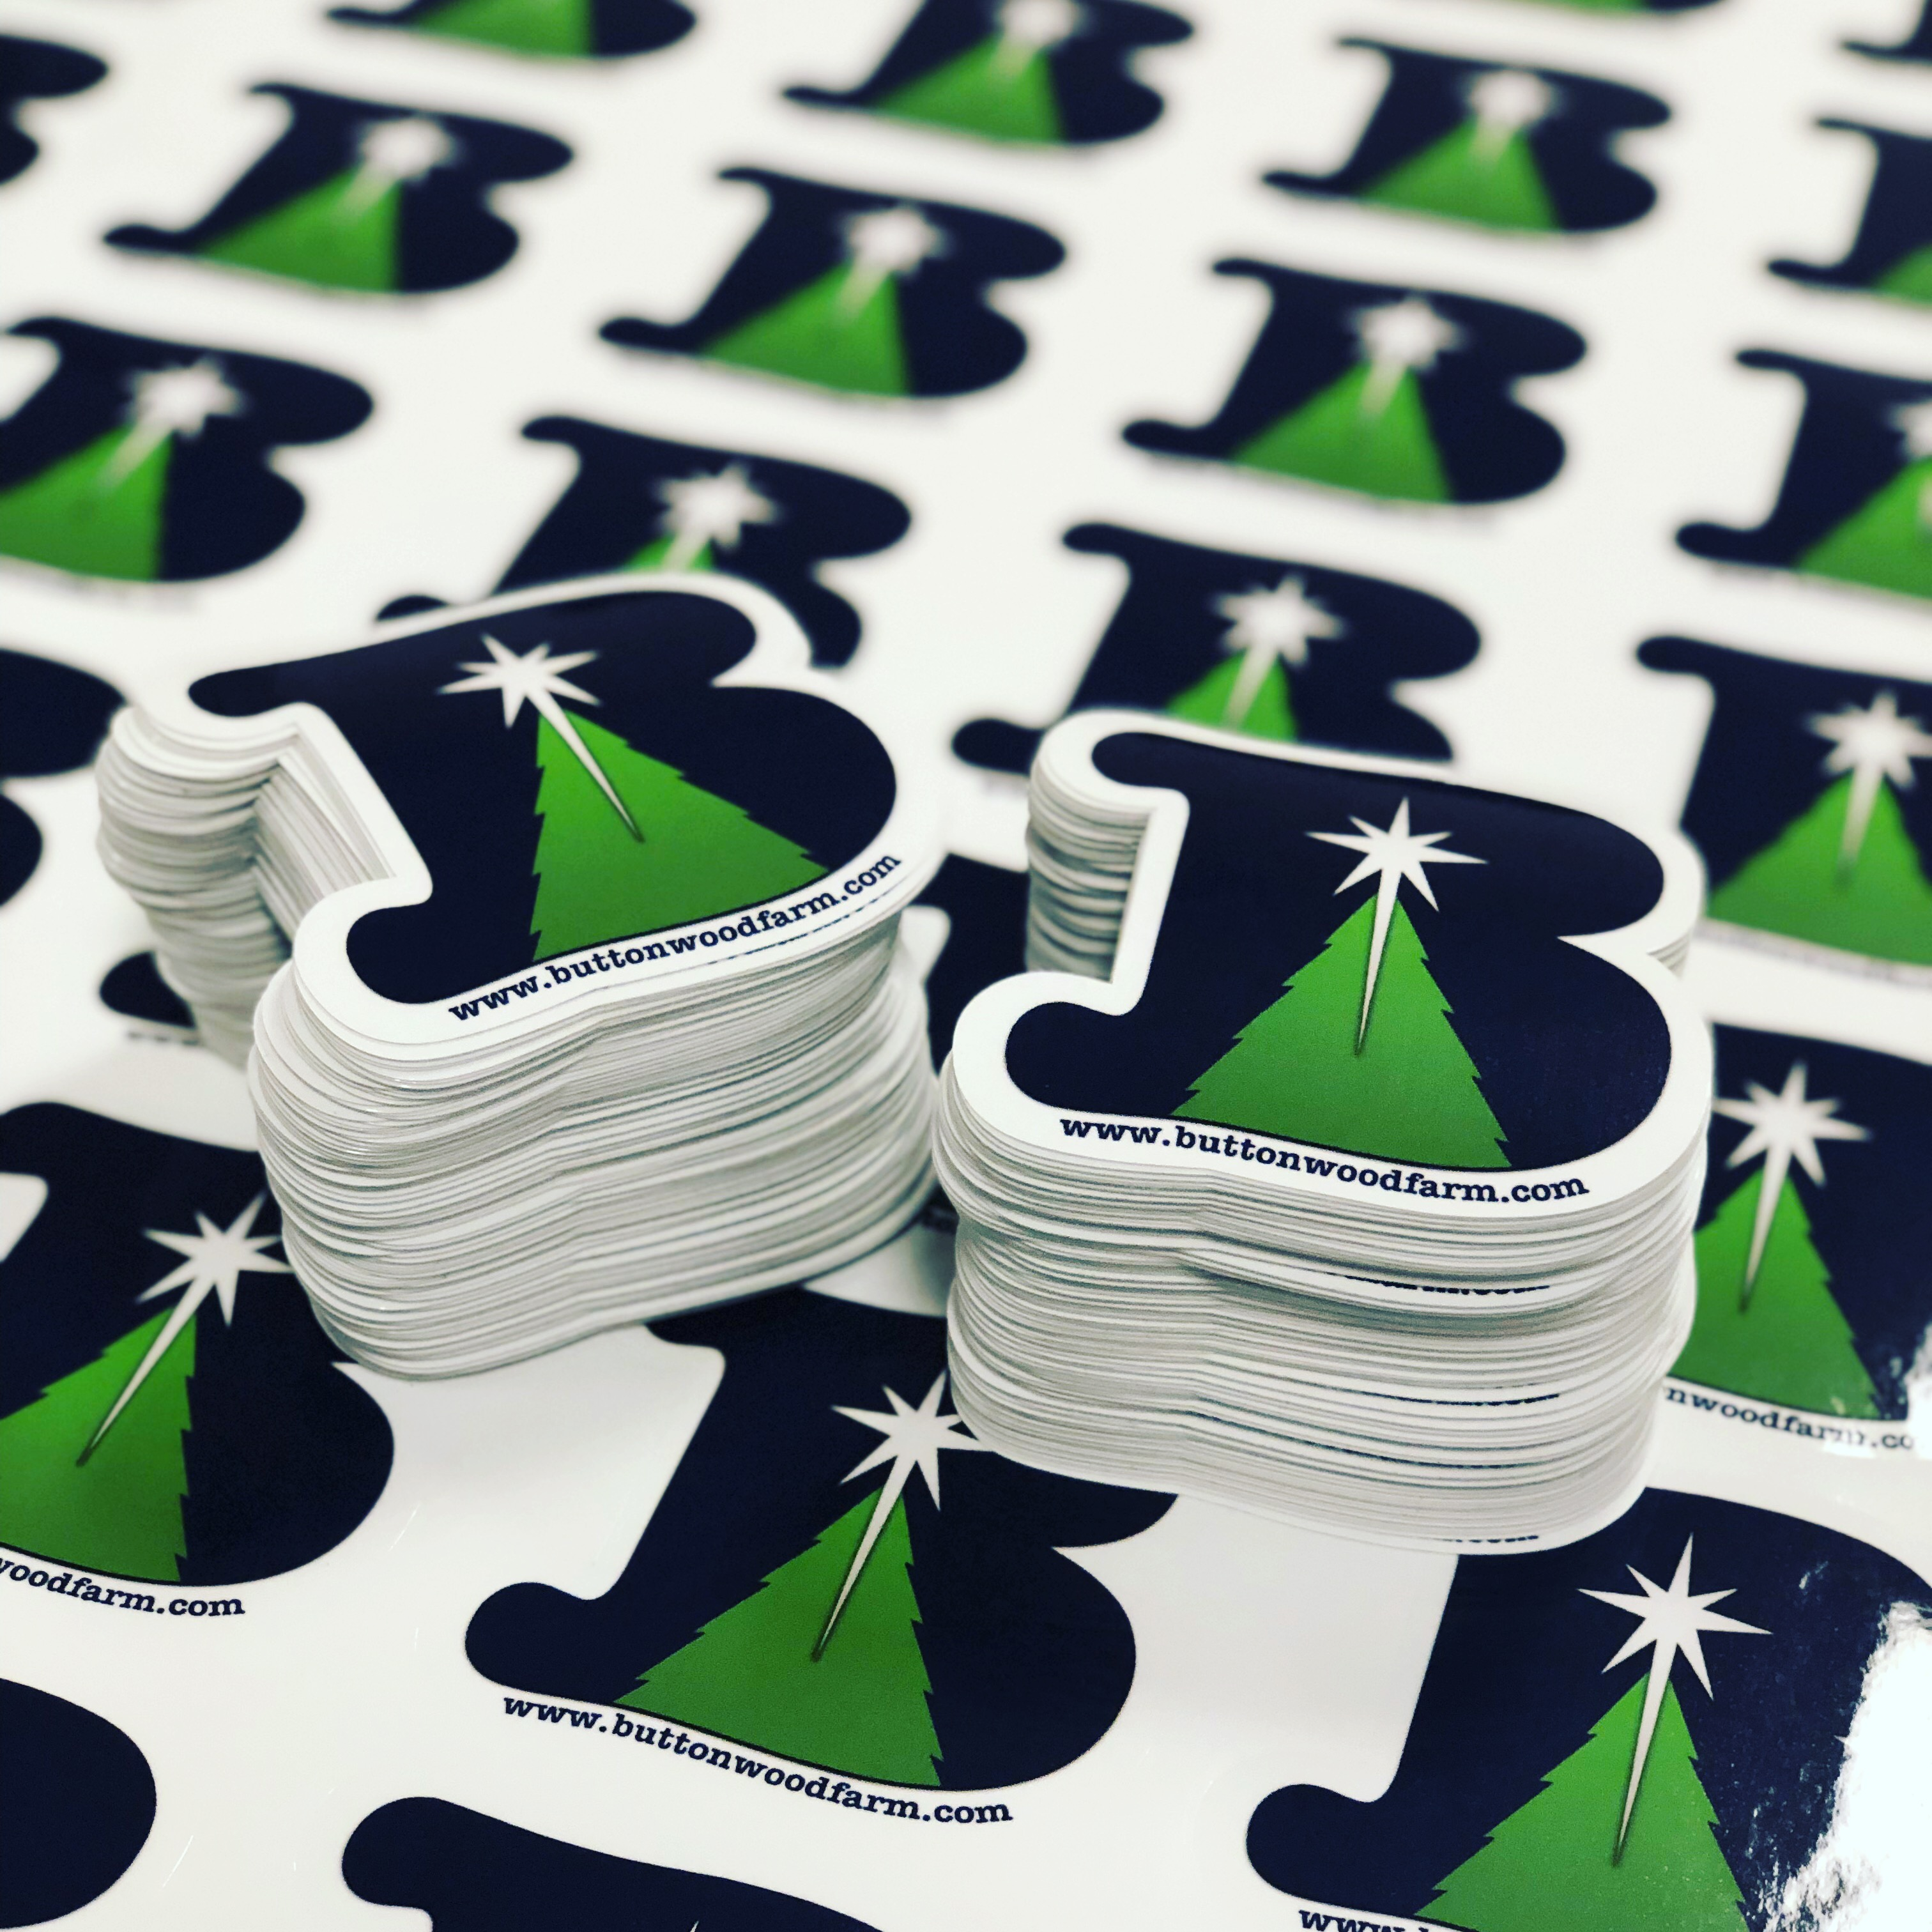 Button Wood Farms Stickers